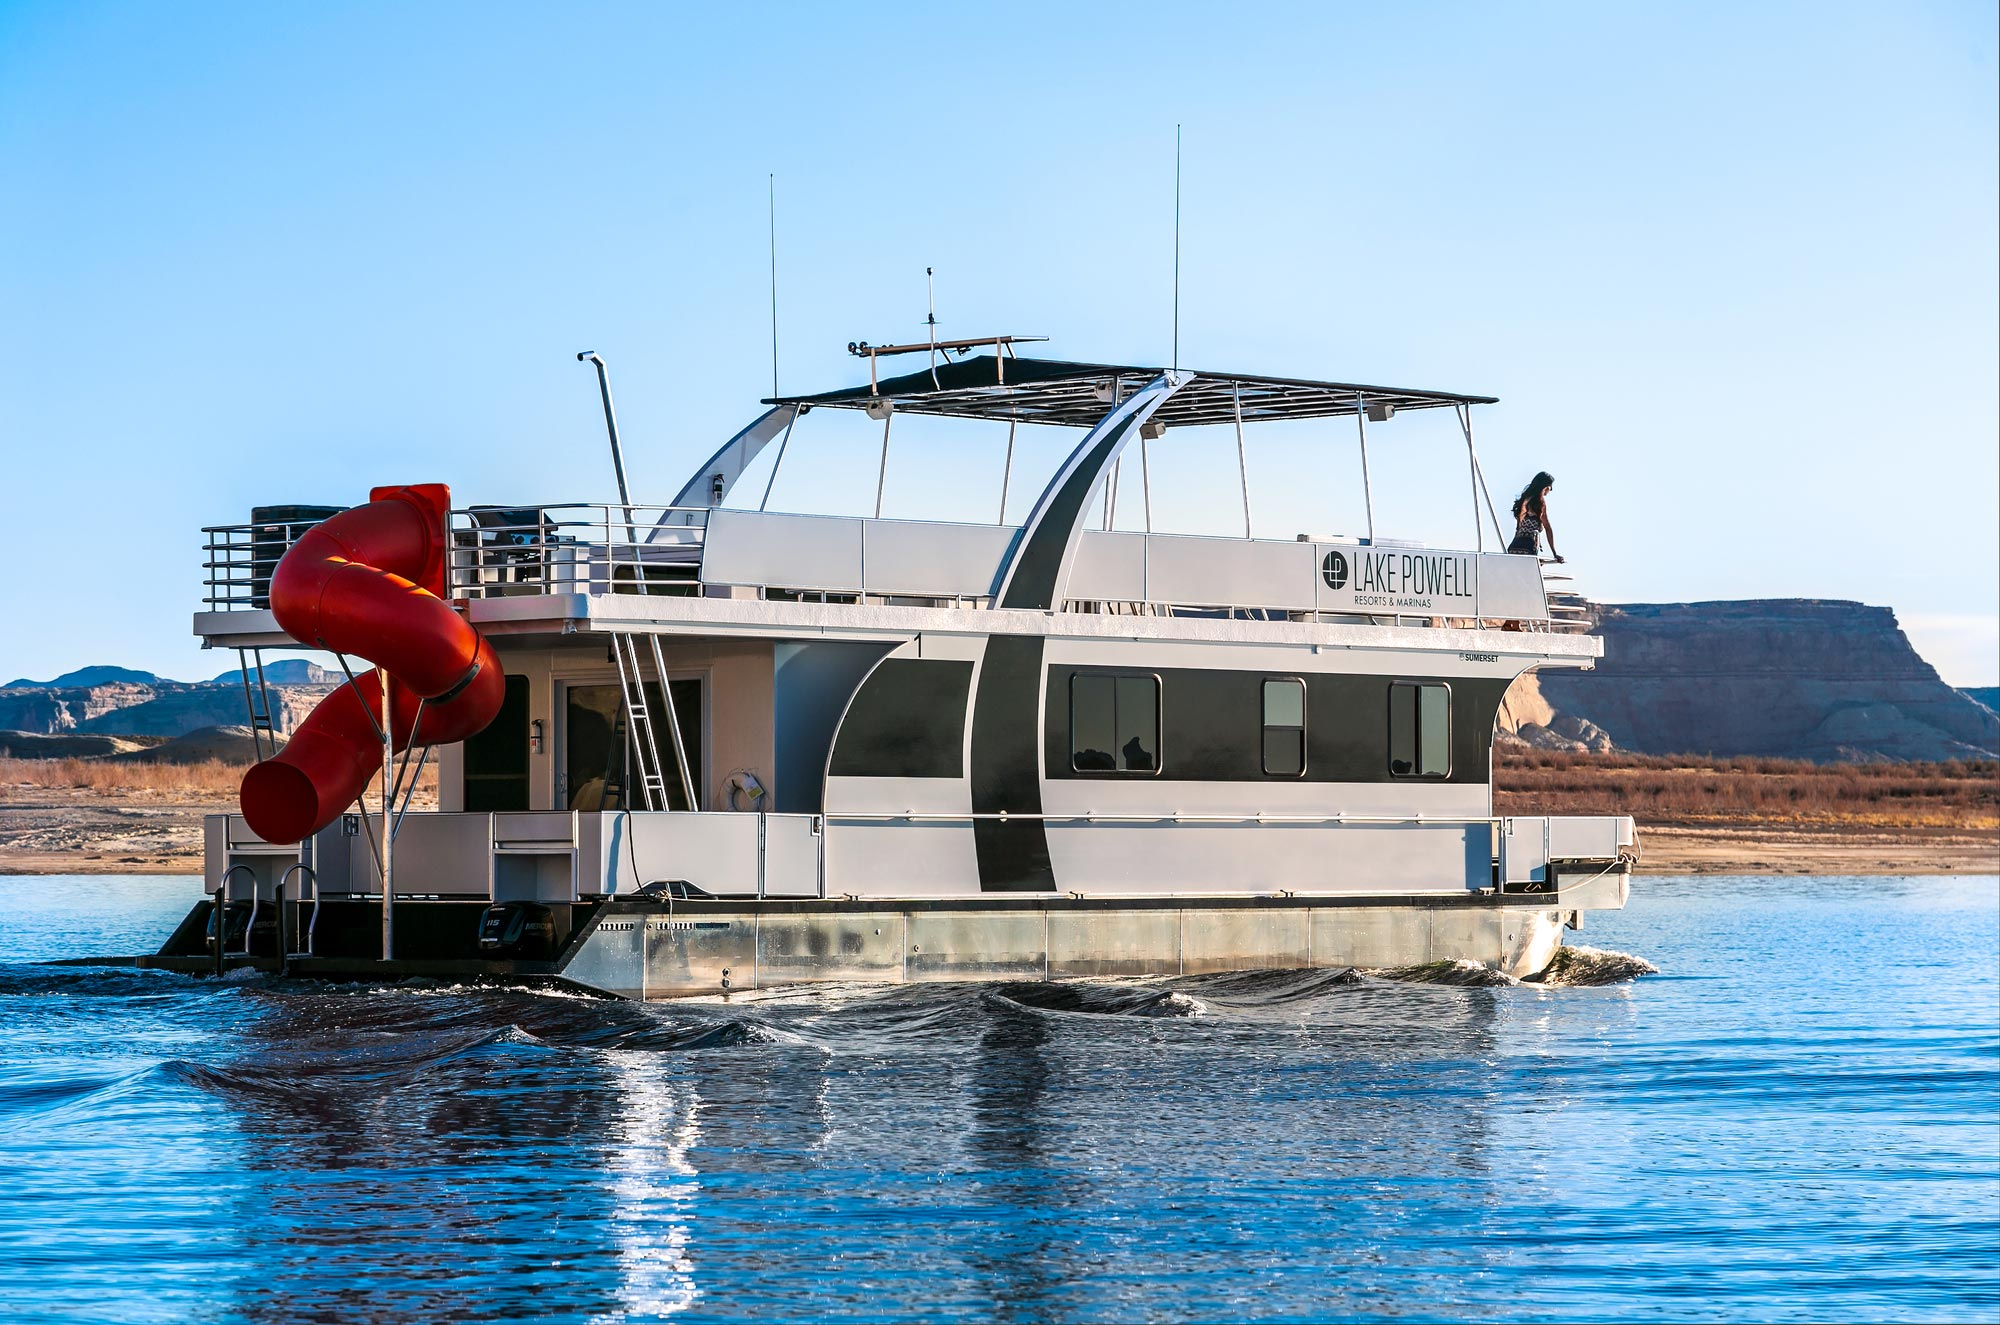 The new 50-ft Nomad Houseboat on Wahweap Bay